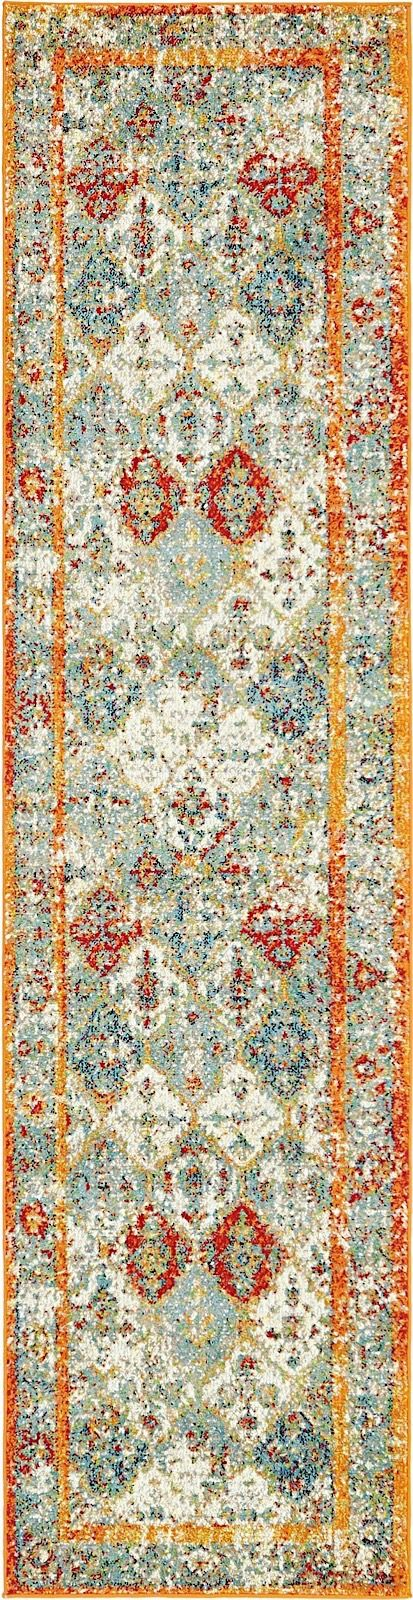 bianco transitional area rug collection